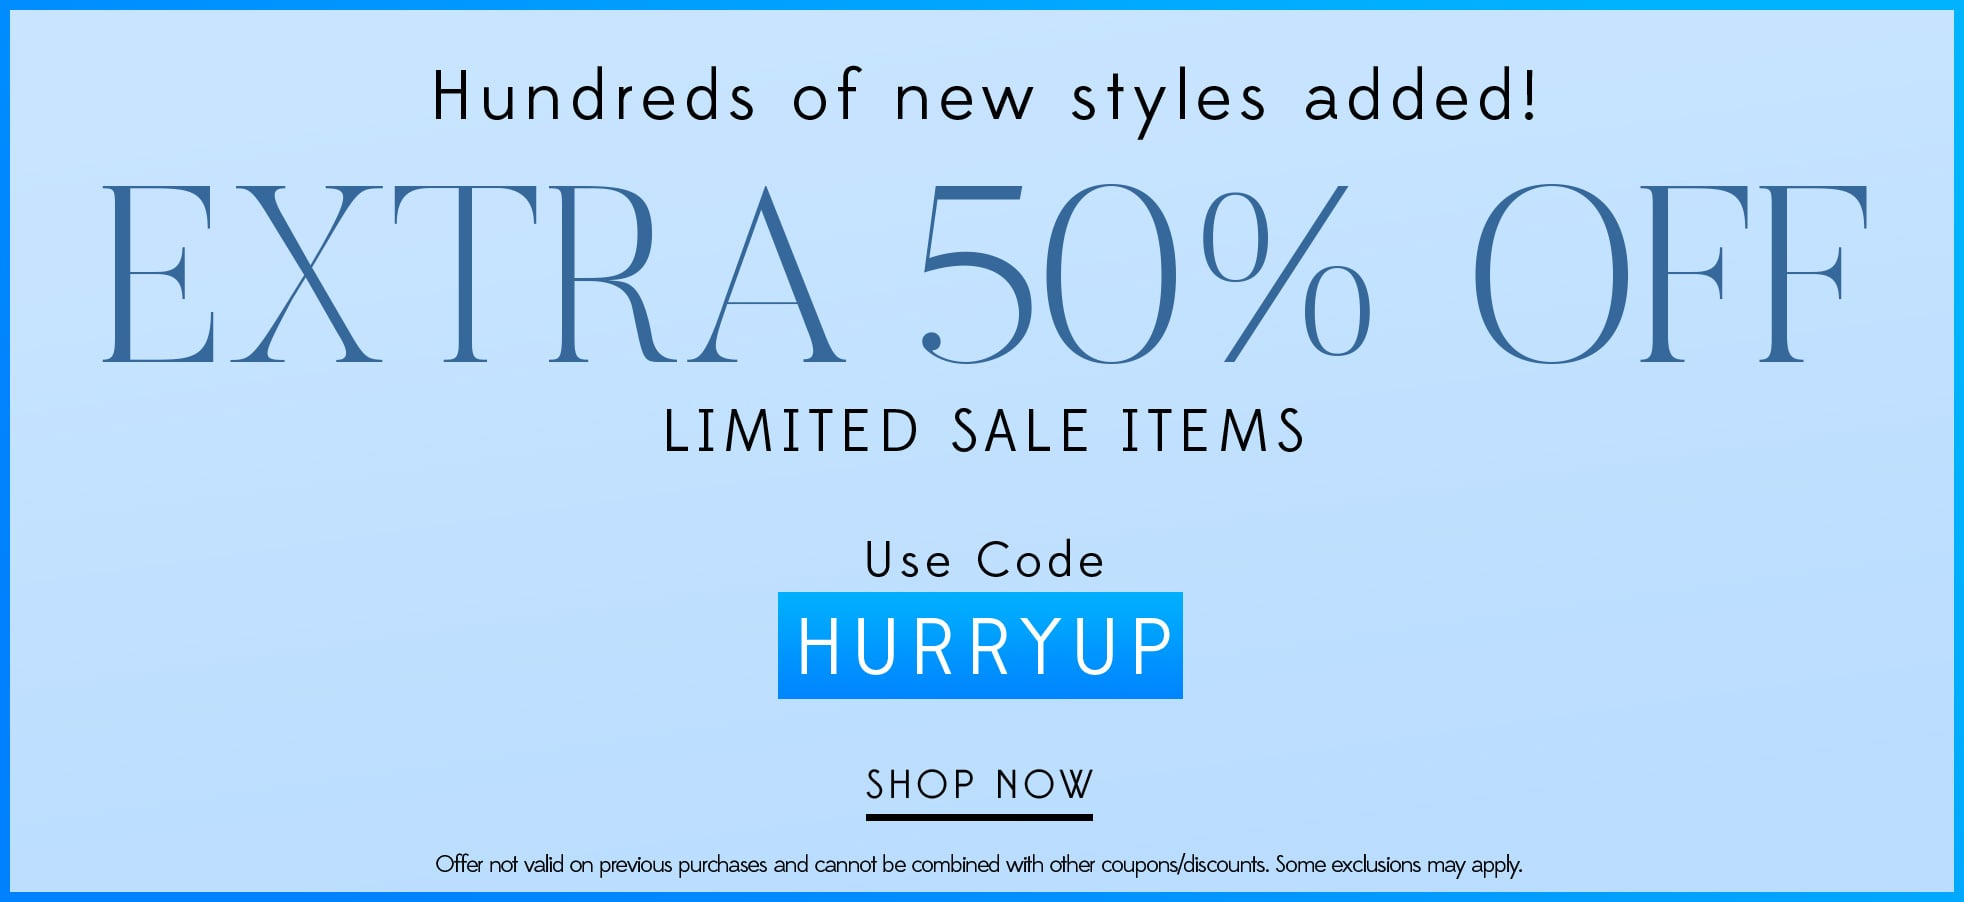 Extra 50% Off Limited Sale items. Use code HURRYUP